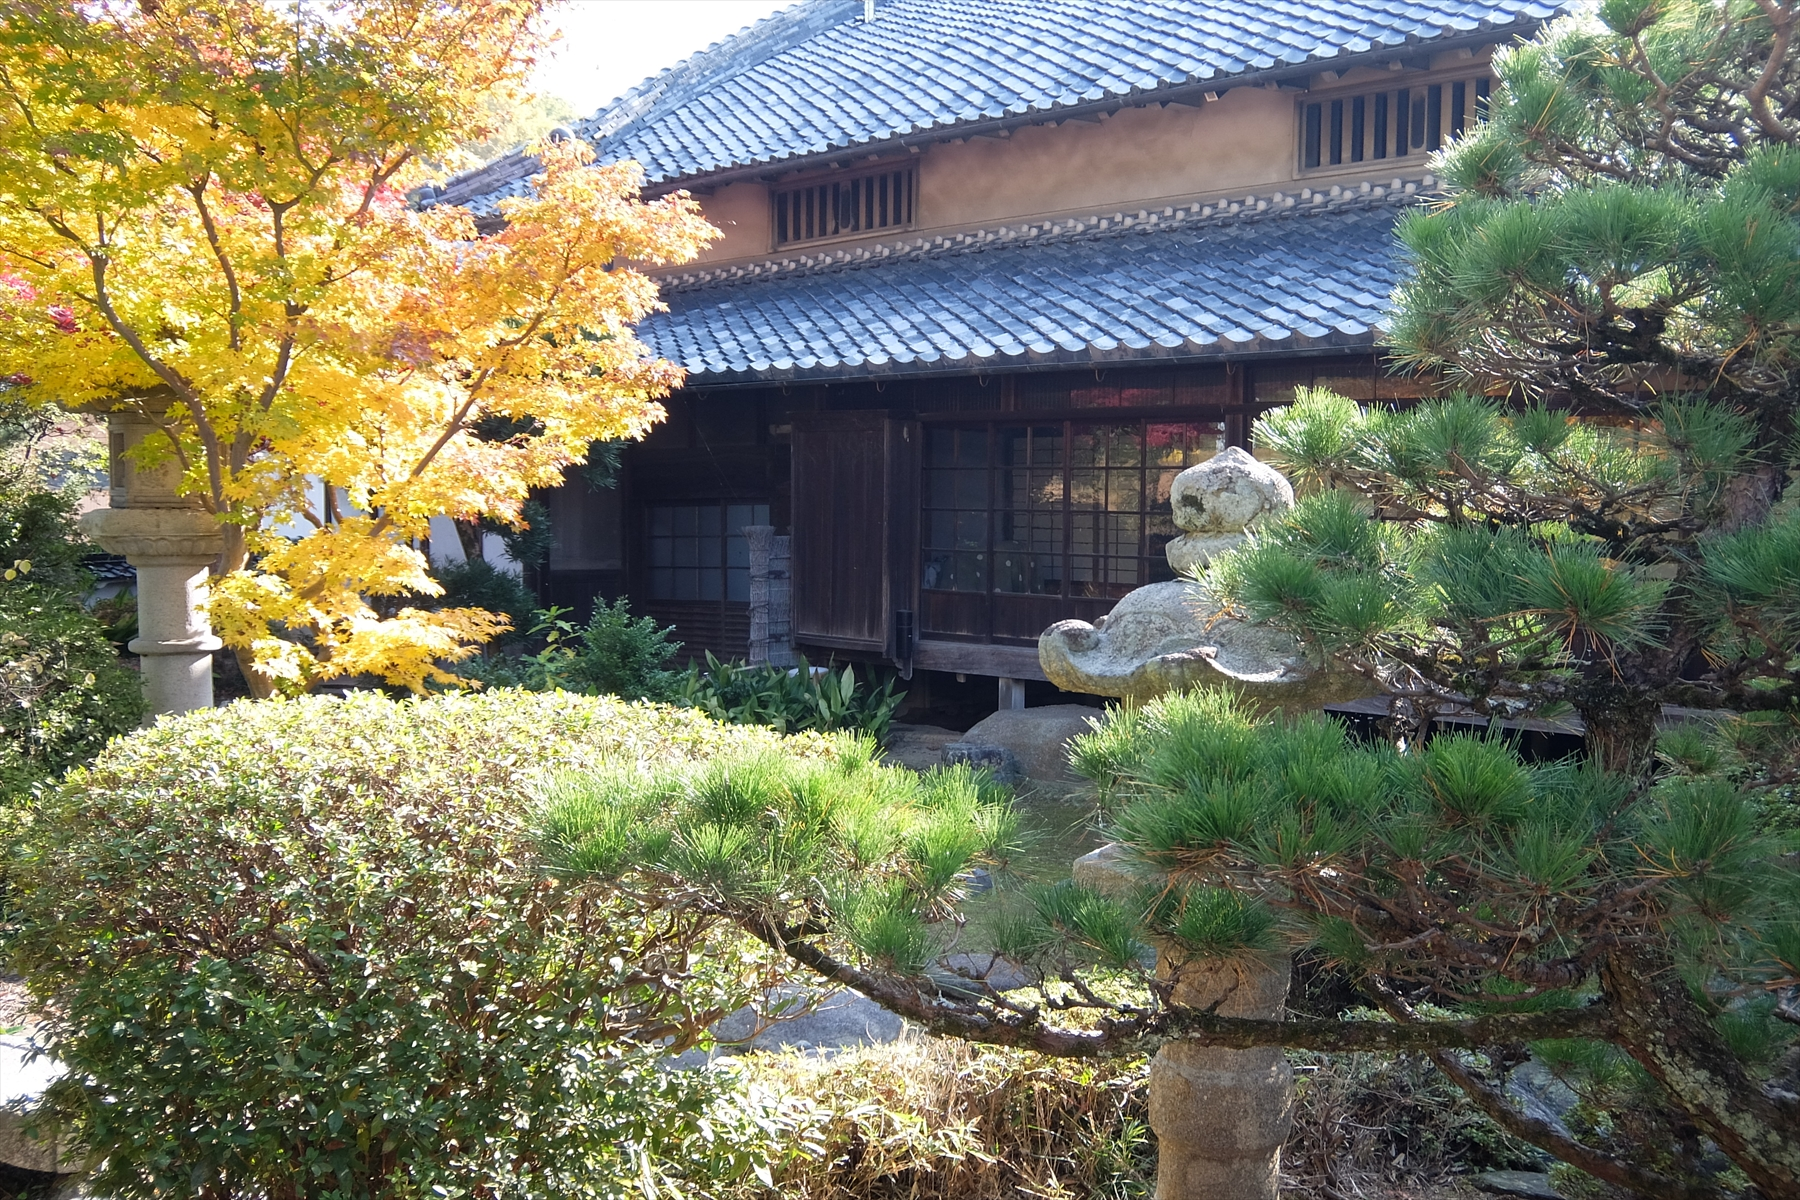 Single Family Home for Sale at Nara Traditional House Other Japan, Other Areas In Japan Japan